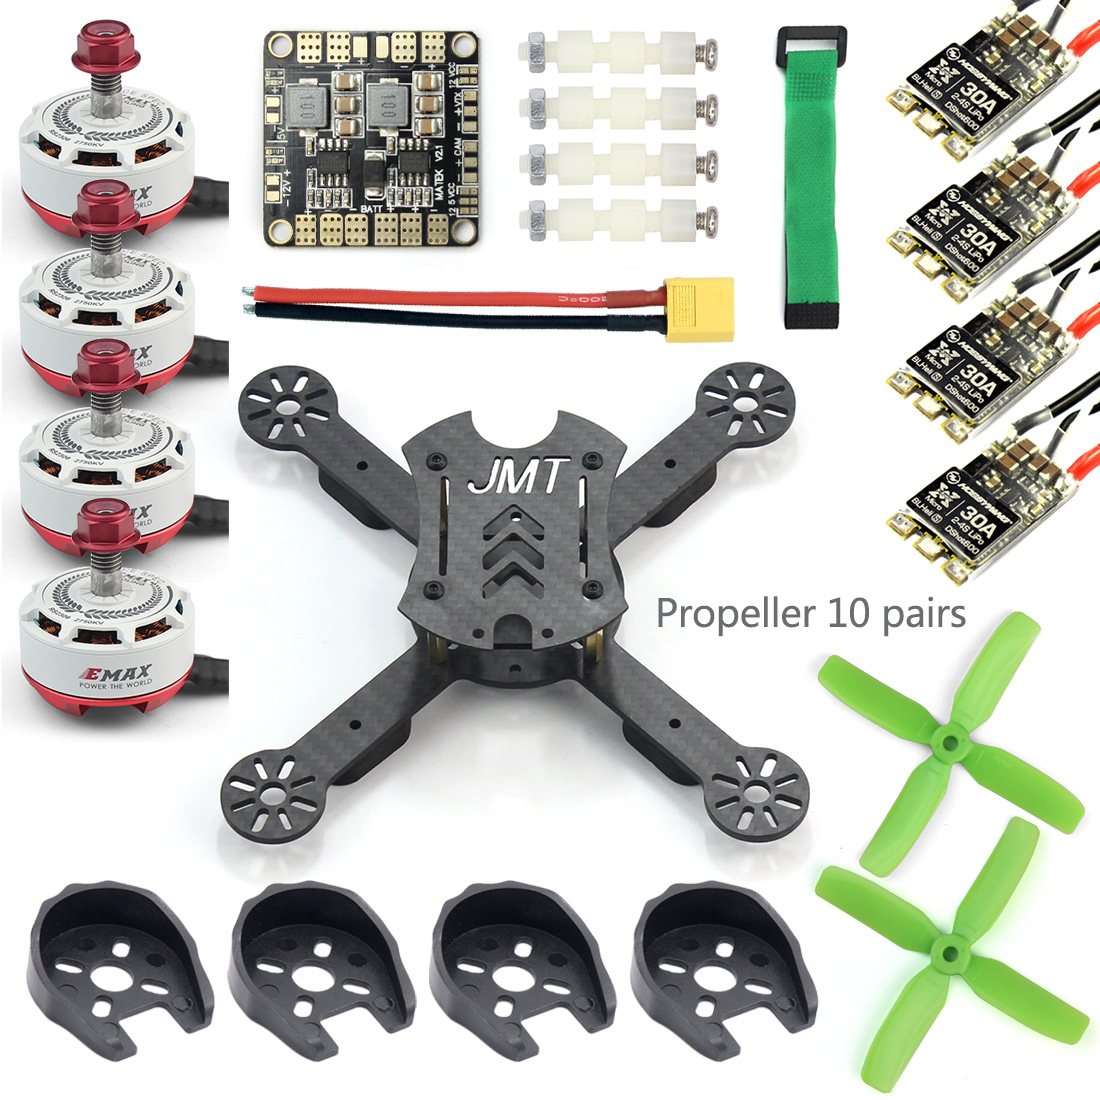 JMT X180 DIY Racing Drone Quadcopter Combo Frame w/ EMAX RS2306 2750KV 2400KV Brushless Motor + BLHeli-s 30A / 4in1 20A 12A ESC 500mm s500 quadcopter multicopter frame kit 2212 920kv brushless motor emax 30a simonk emax blheli 30a esc 1045 propeller